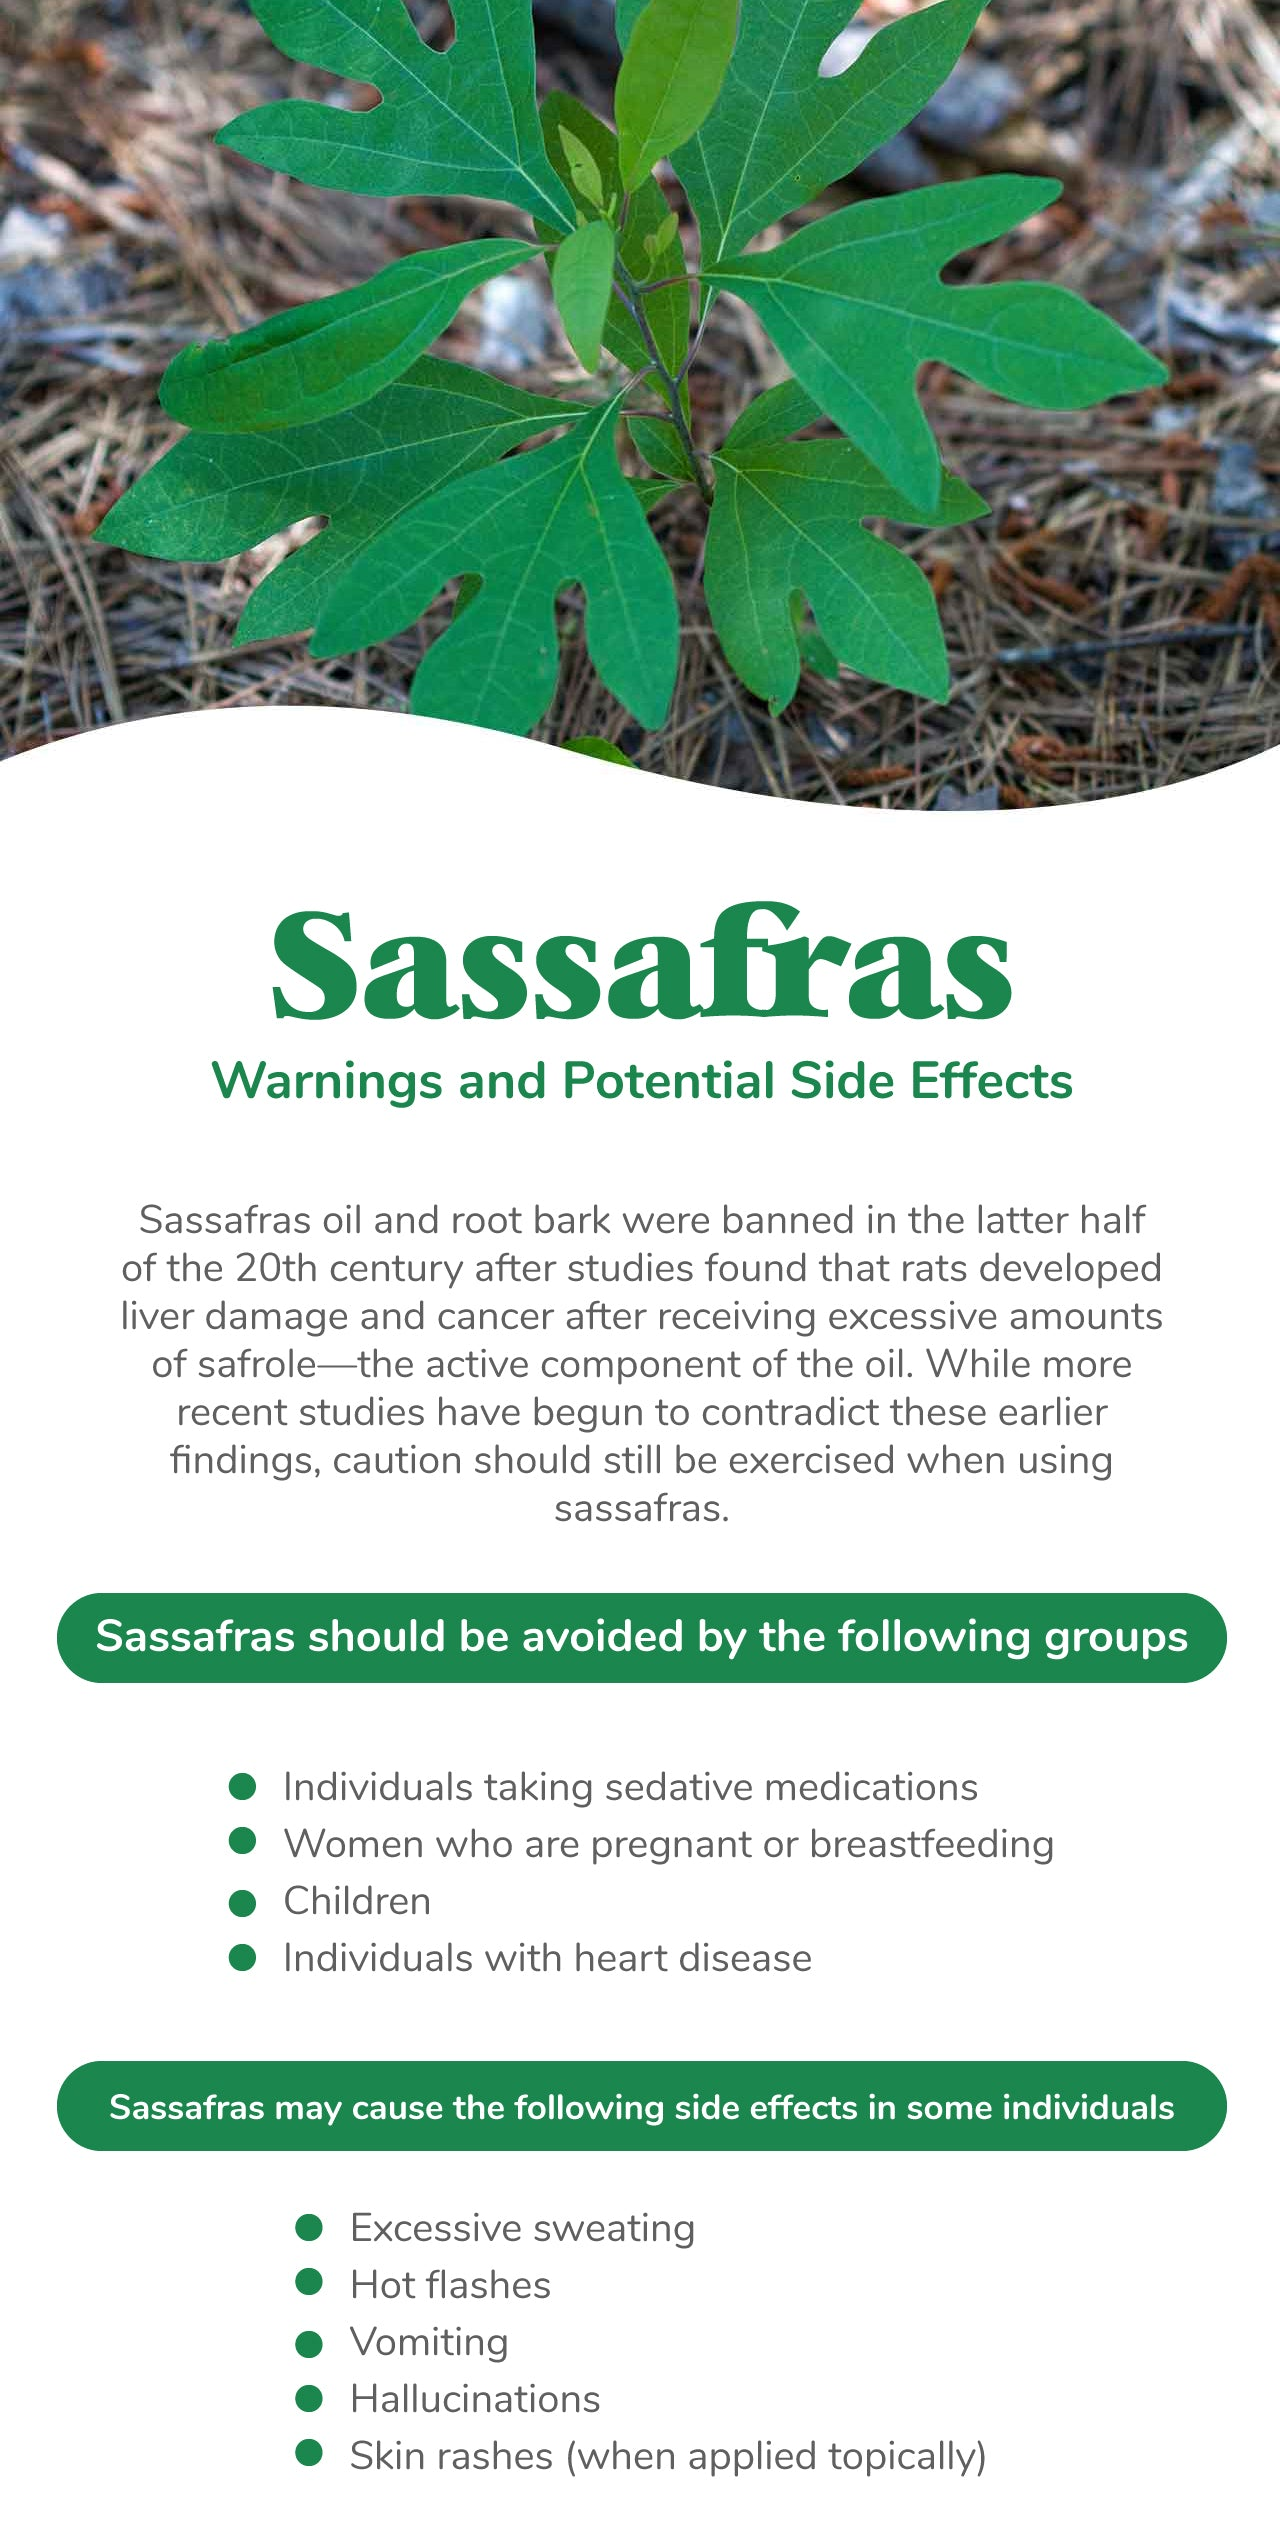 Sassafras Warnings and Potential Side Effects